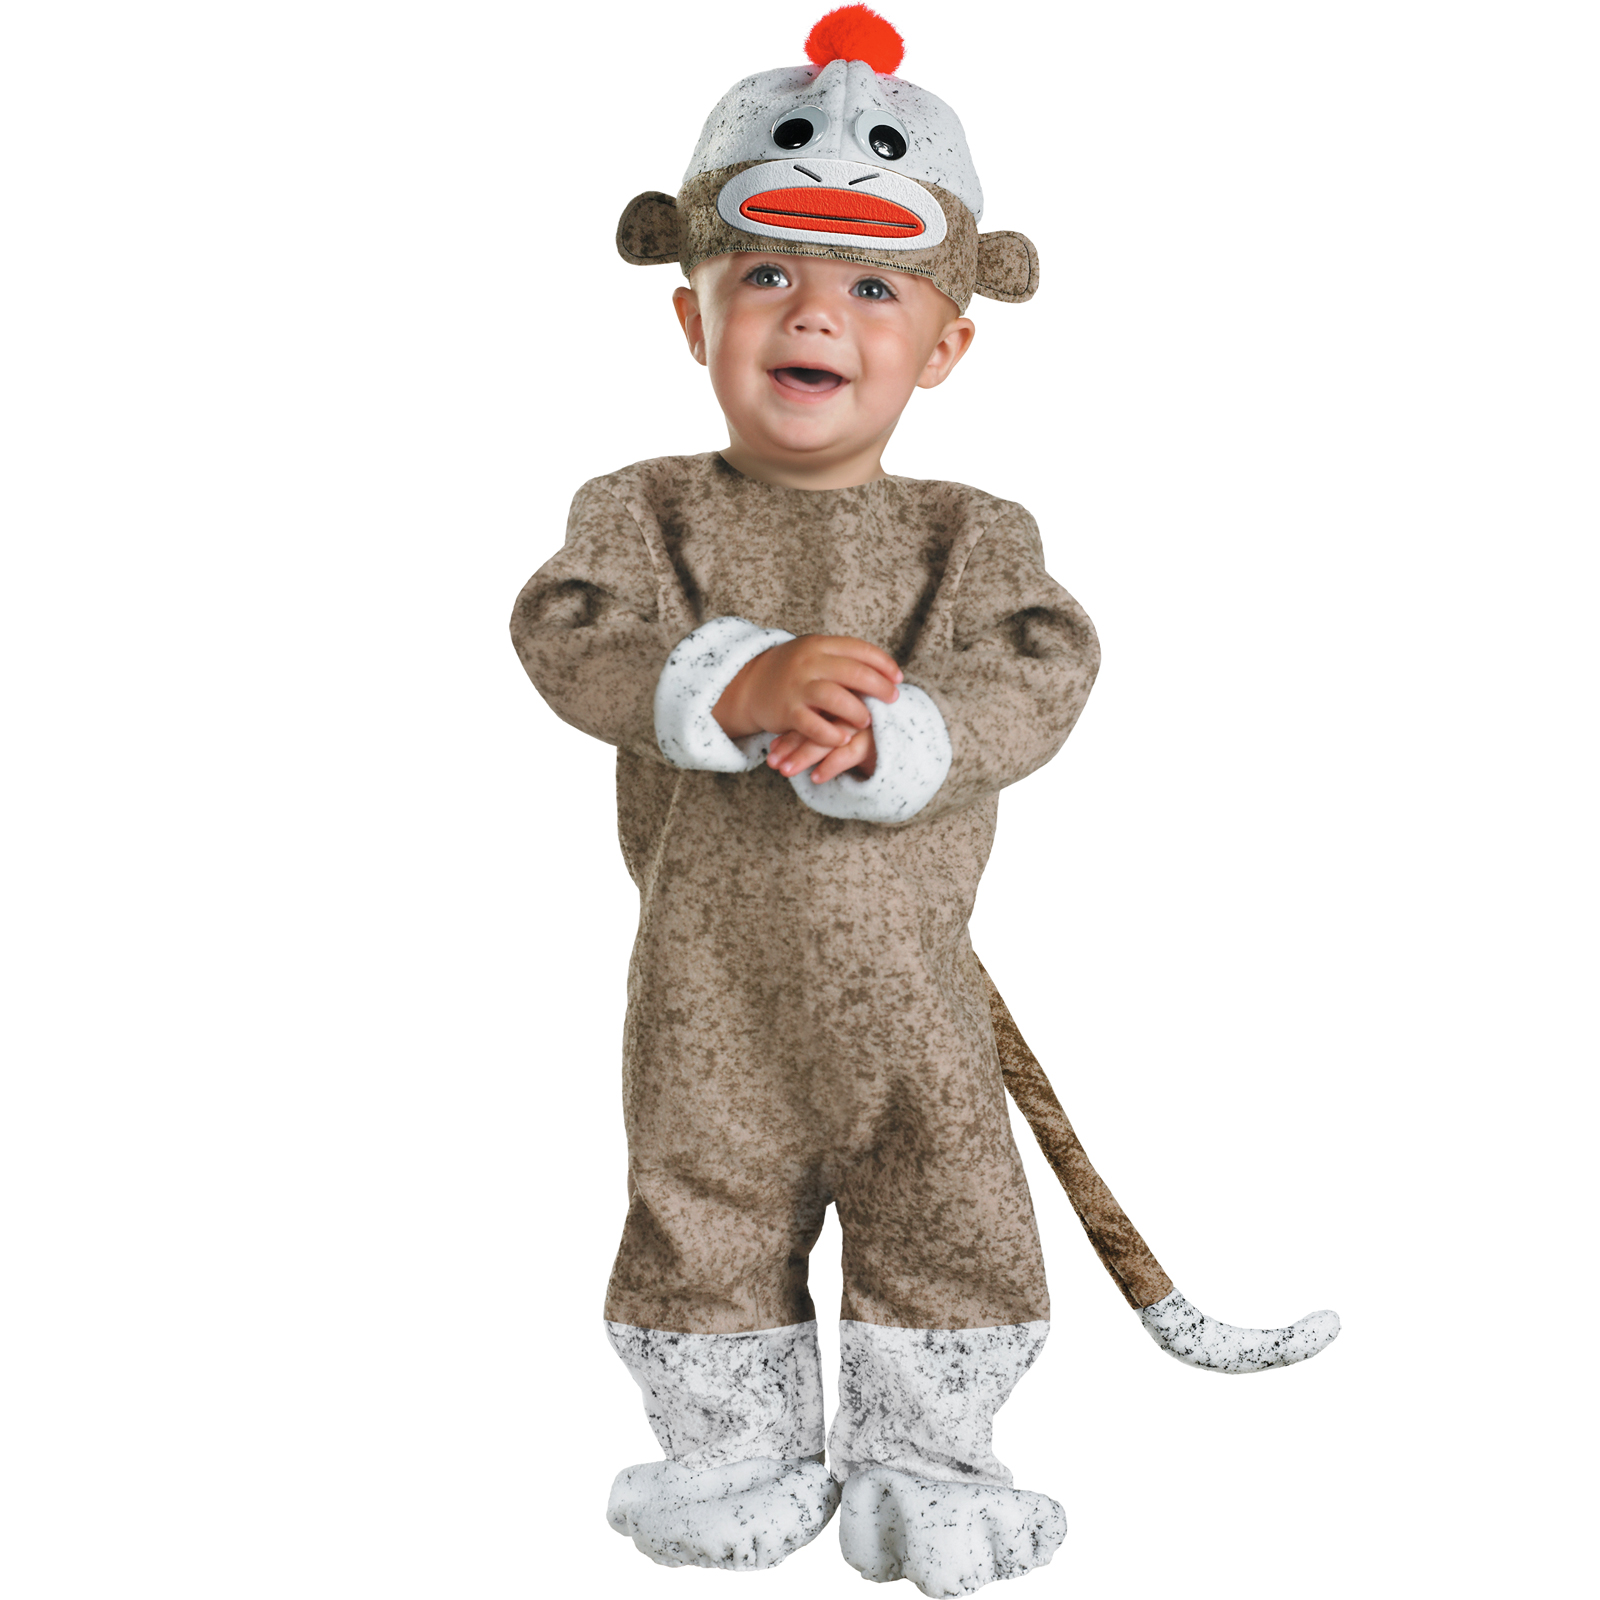 Monkey Halloween Costumes In All Sizes - All Halloween Costumes